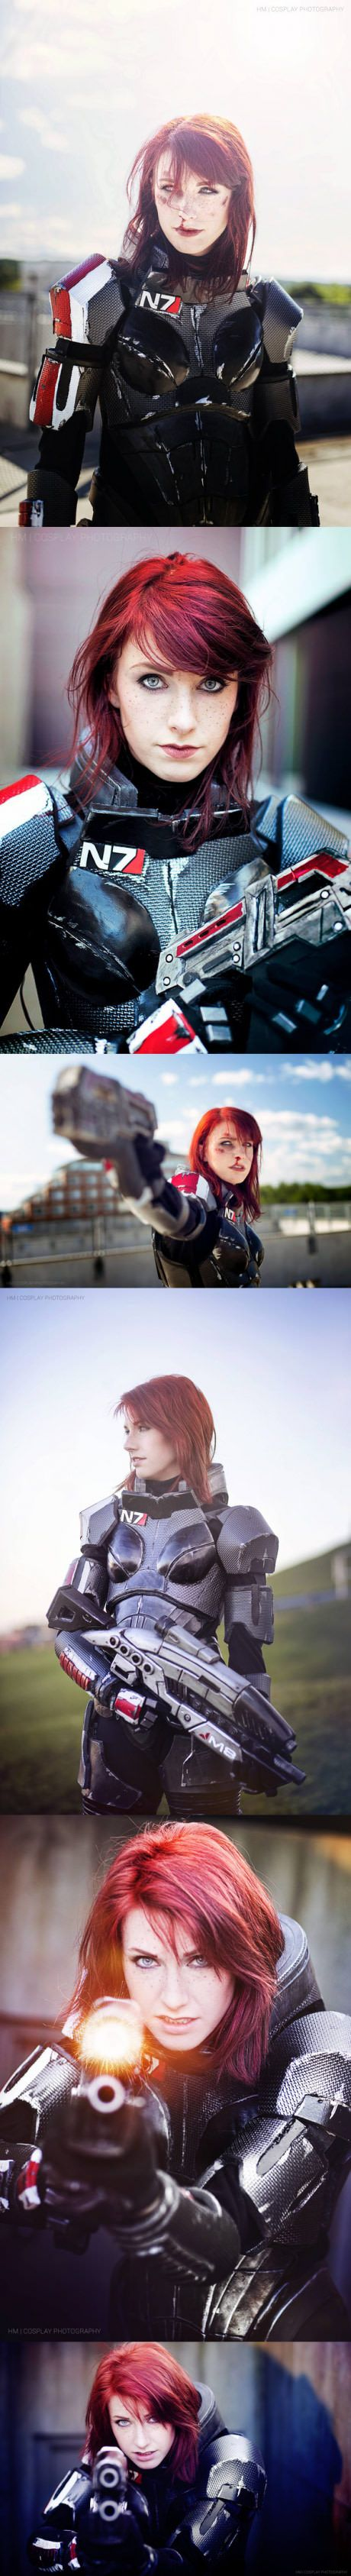 Femshep Cosplay - Mass Effect